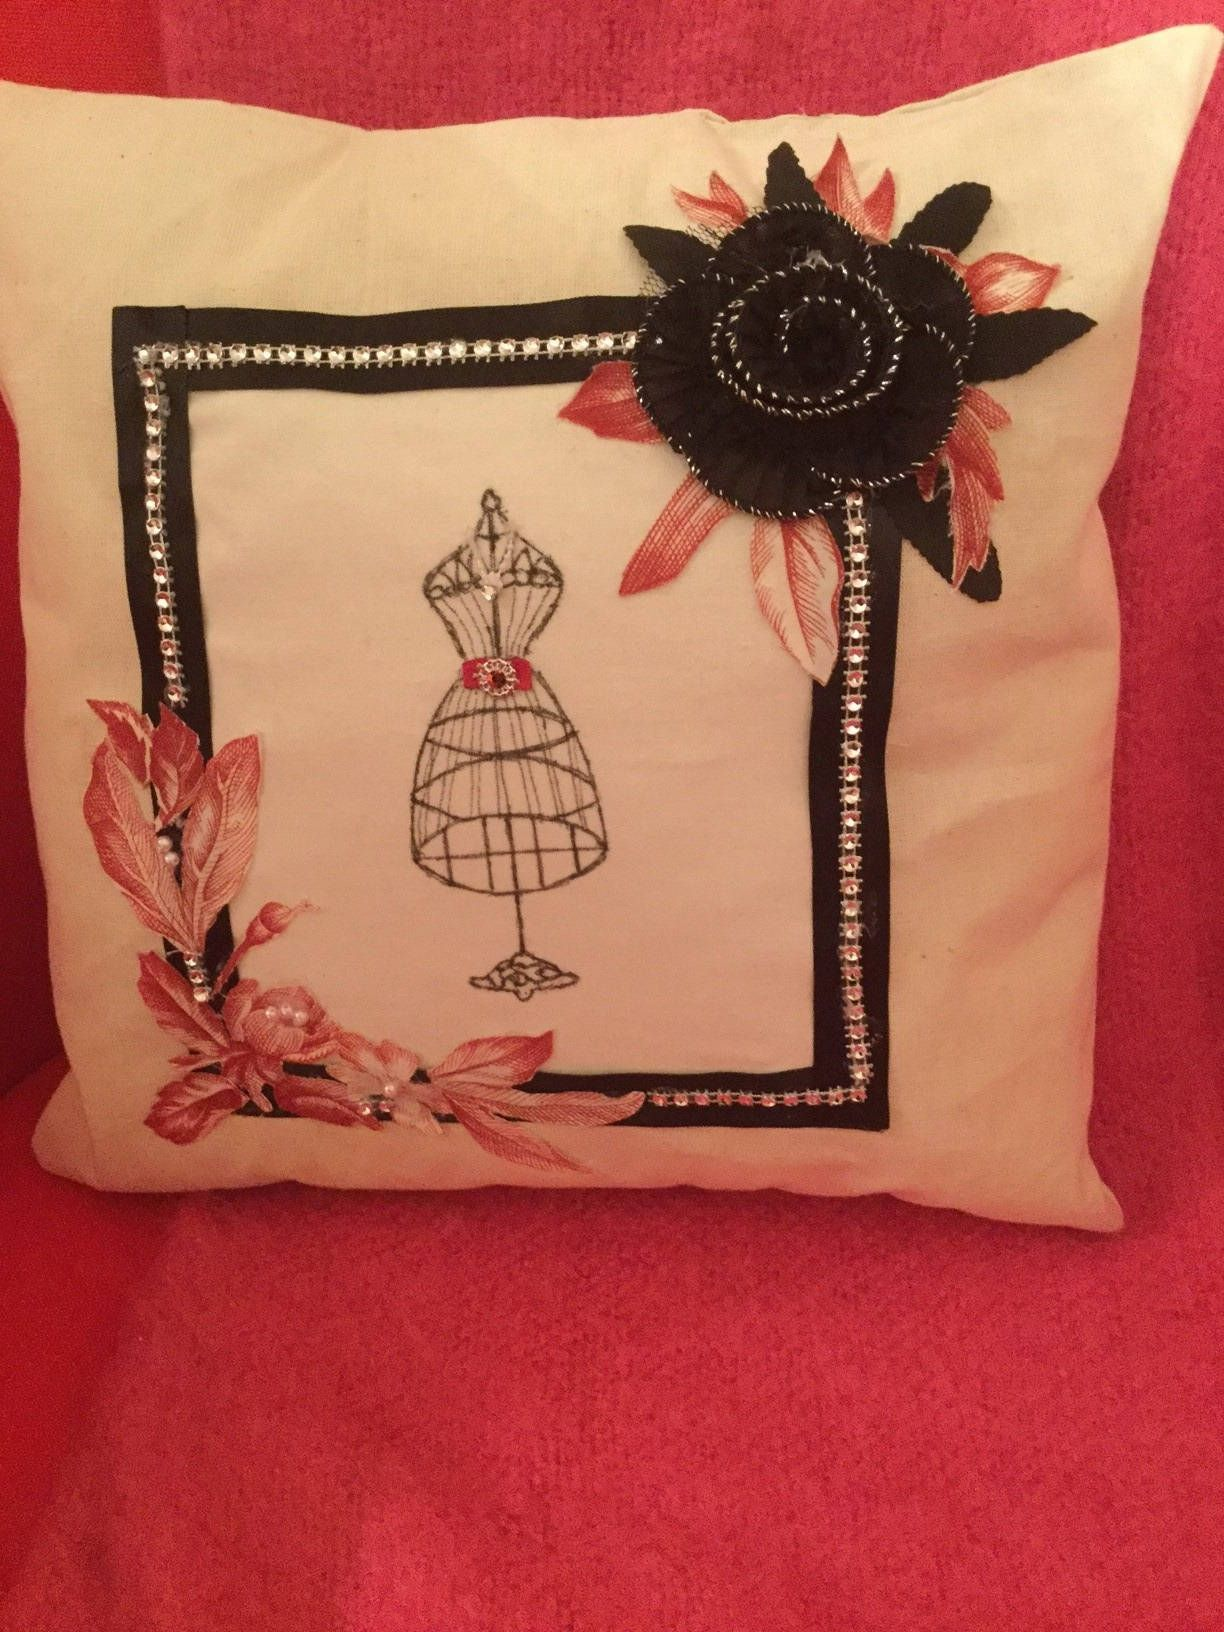 Handmade hand painted mannequin design cushion finished with